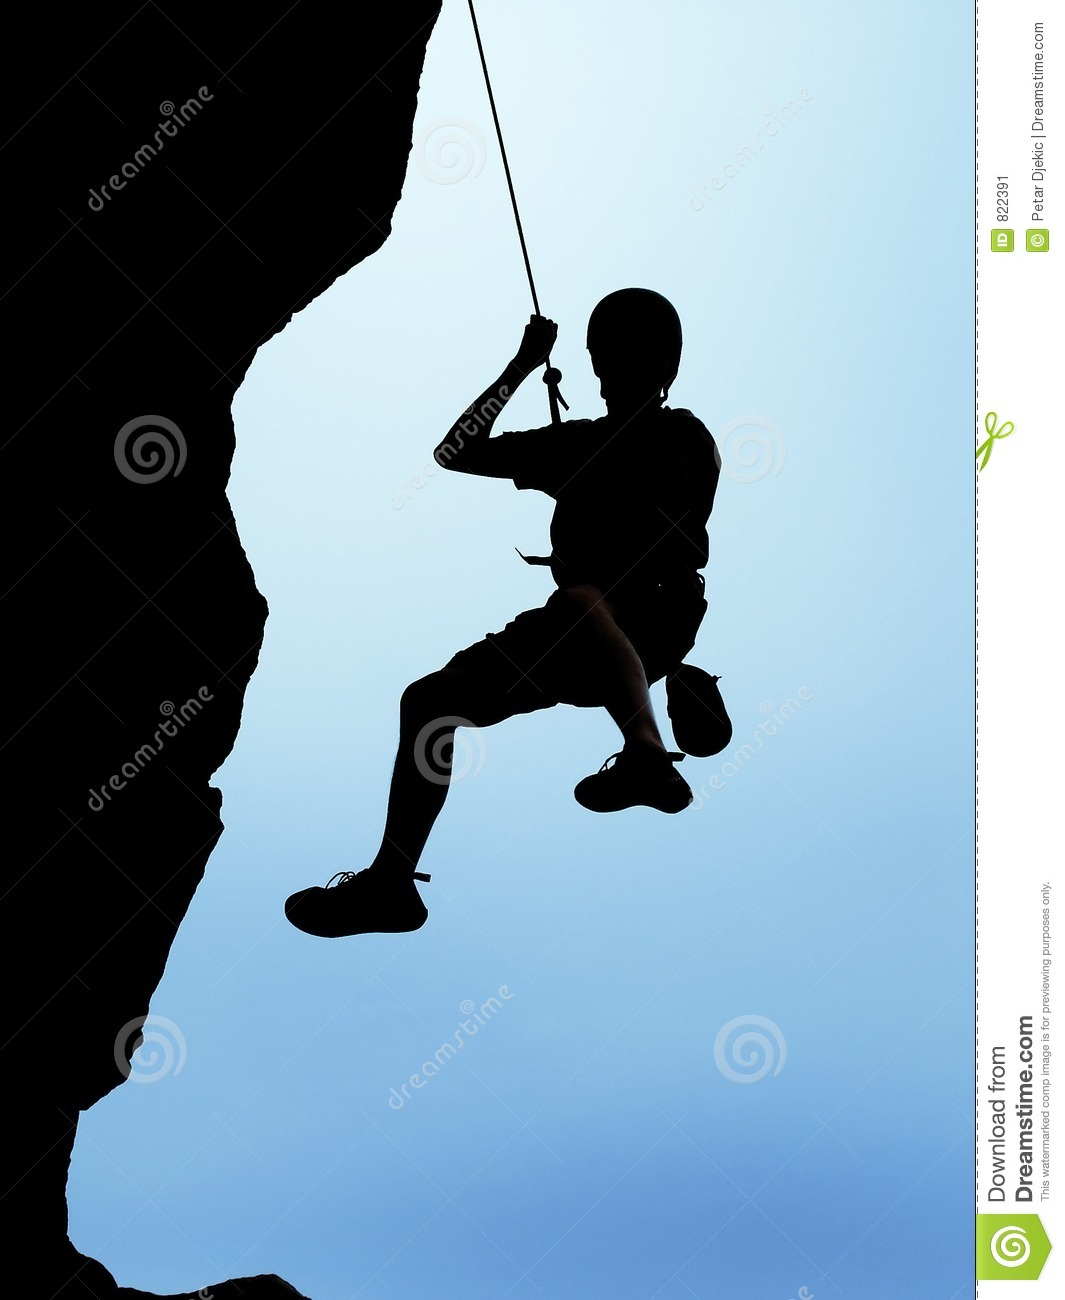 Extreme Climbing clipart #16, Download drawings